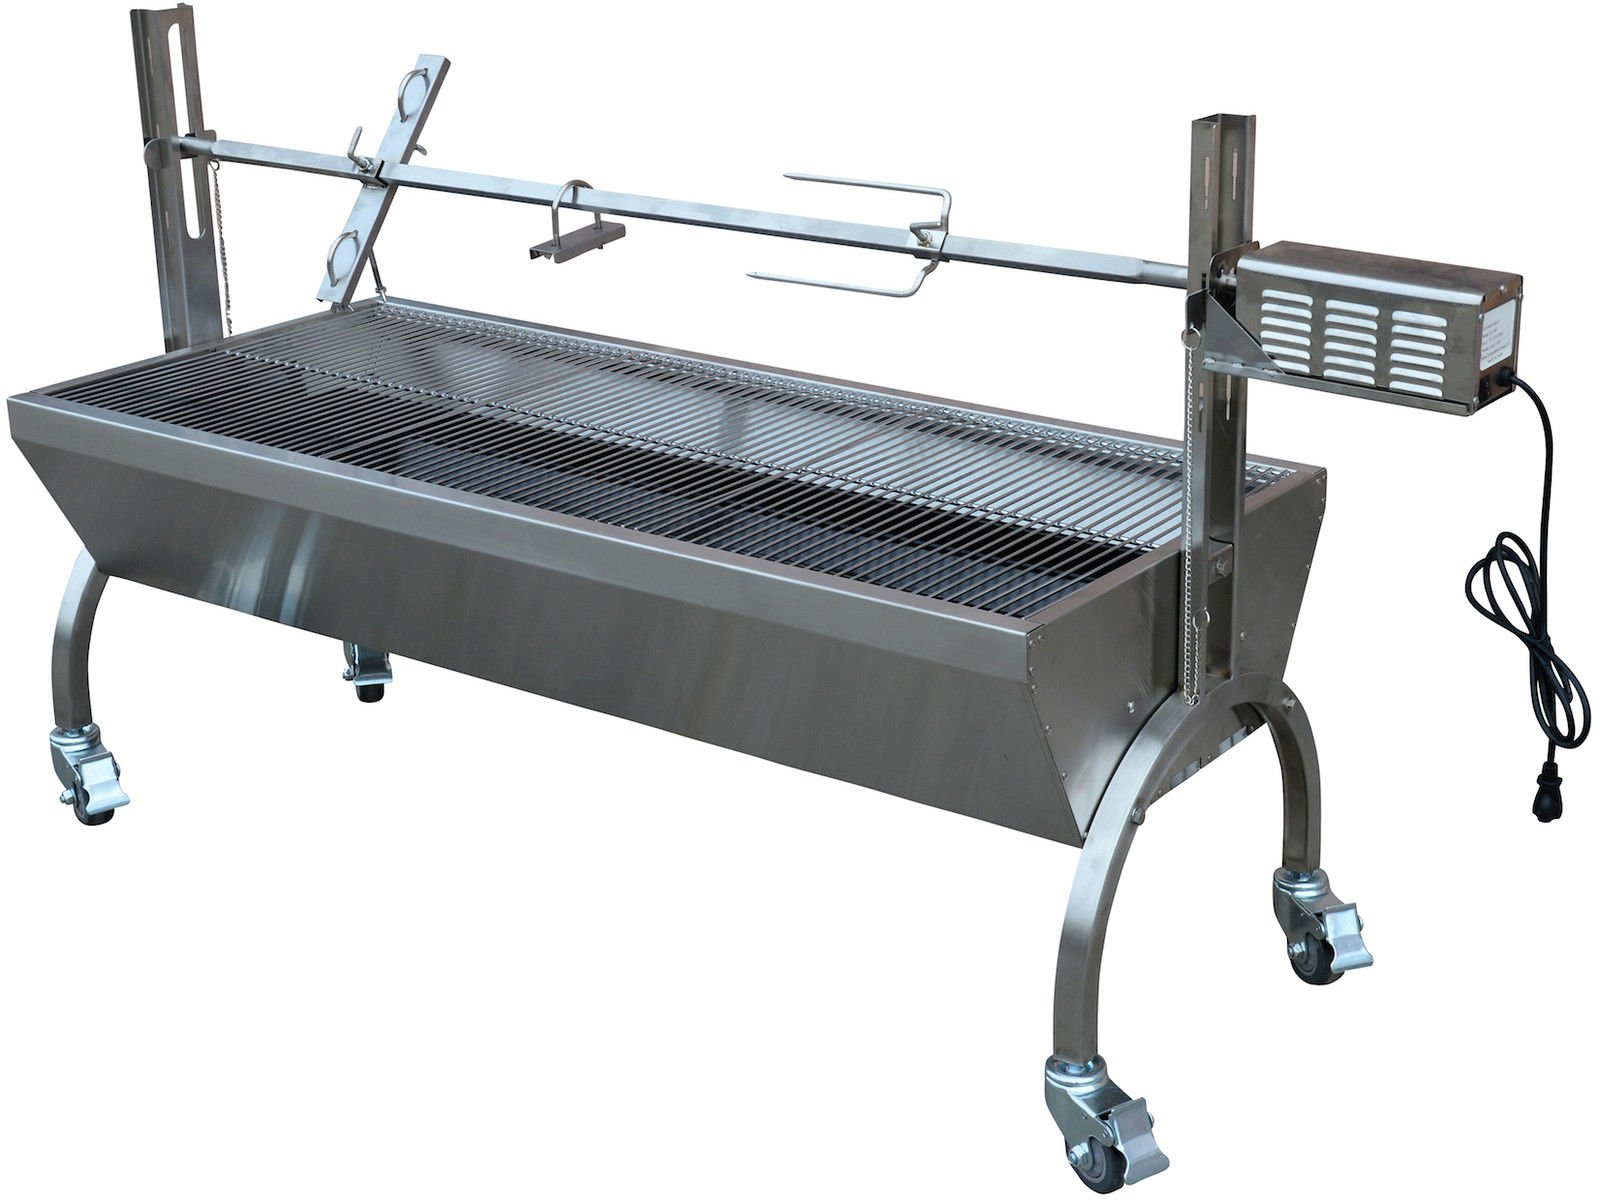 Roaster Stainless Steel 13W 88LBS capacity BBQ charcoal pig